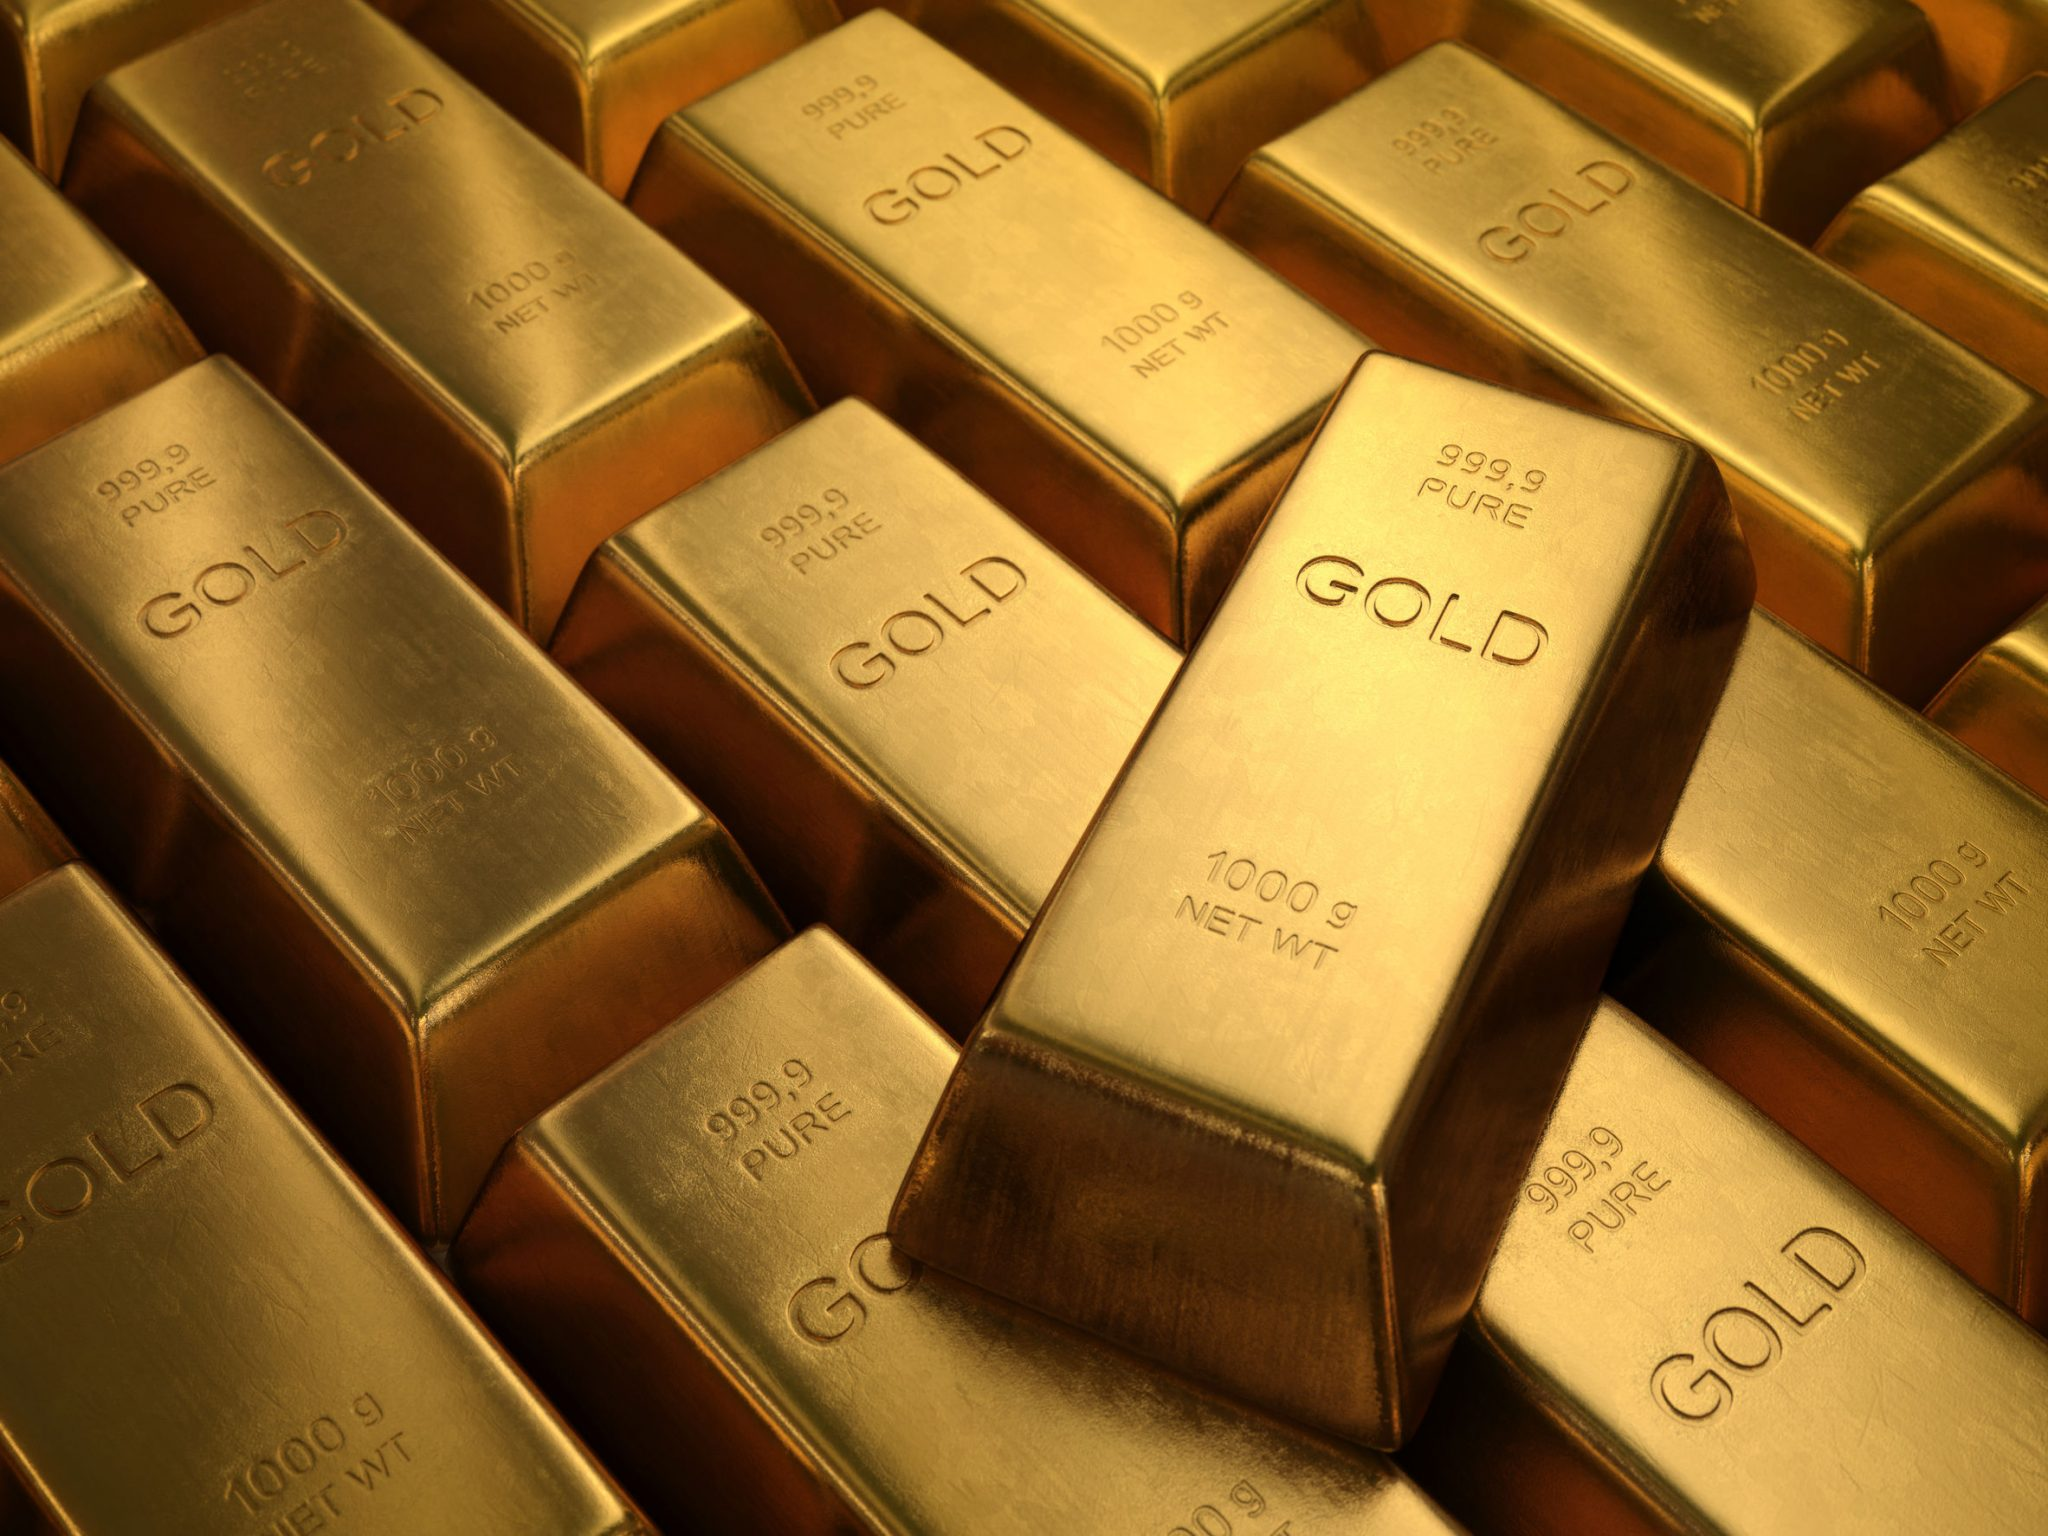 Why are bitcoin traders flocking into gold